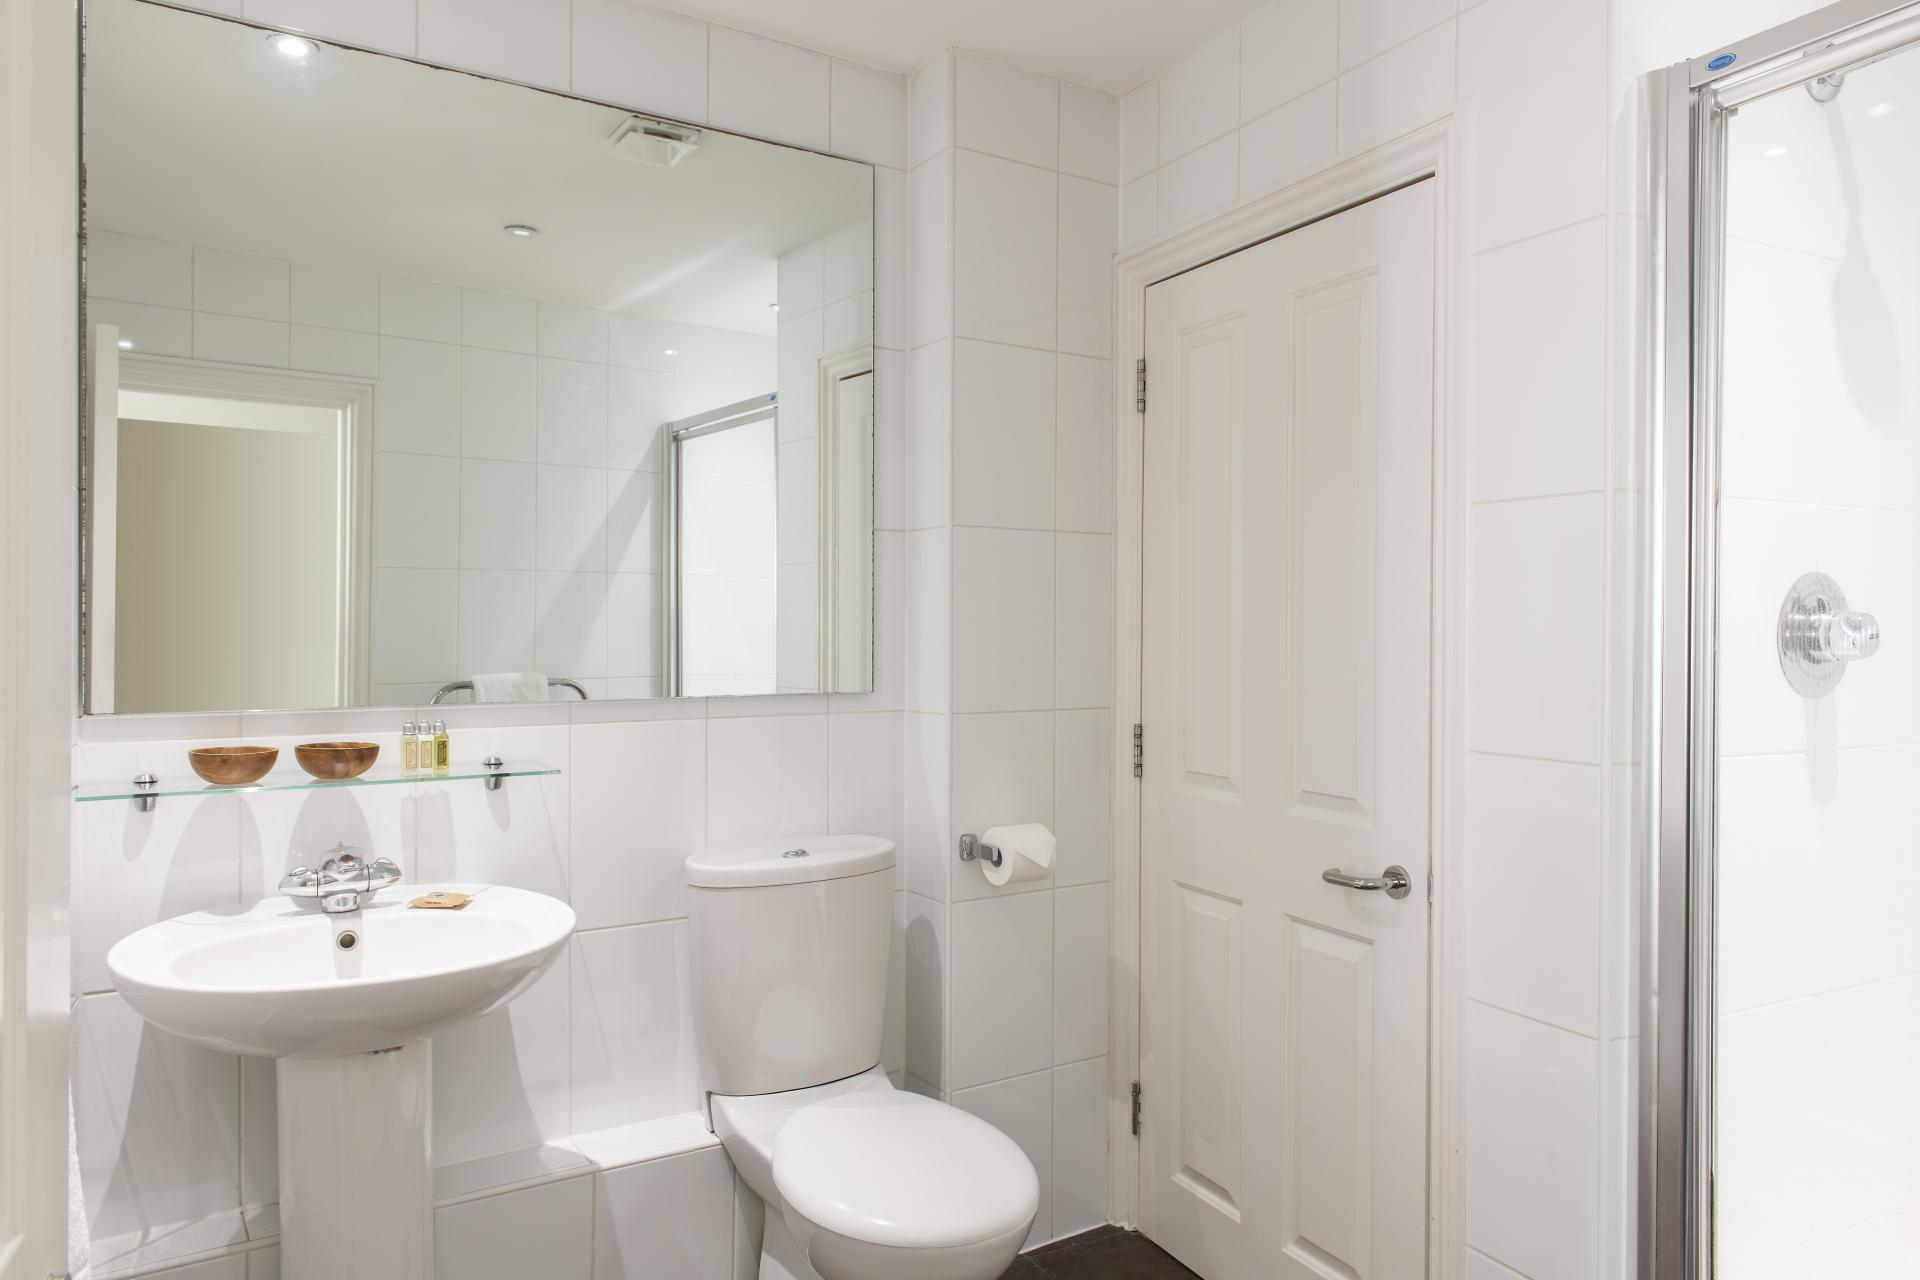 Bathoom at Cove West India House, Waterfront, Bristol - Citybase Apartments